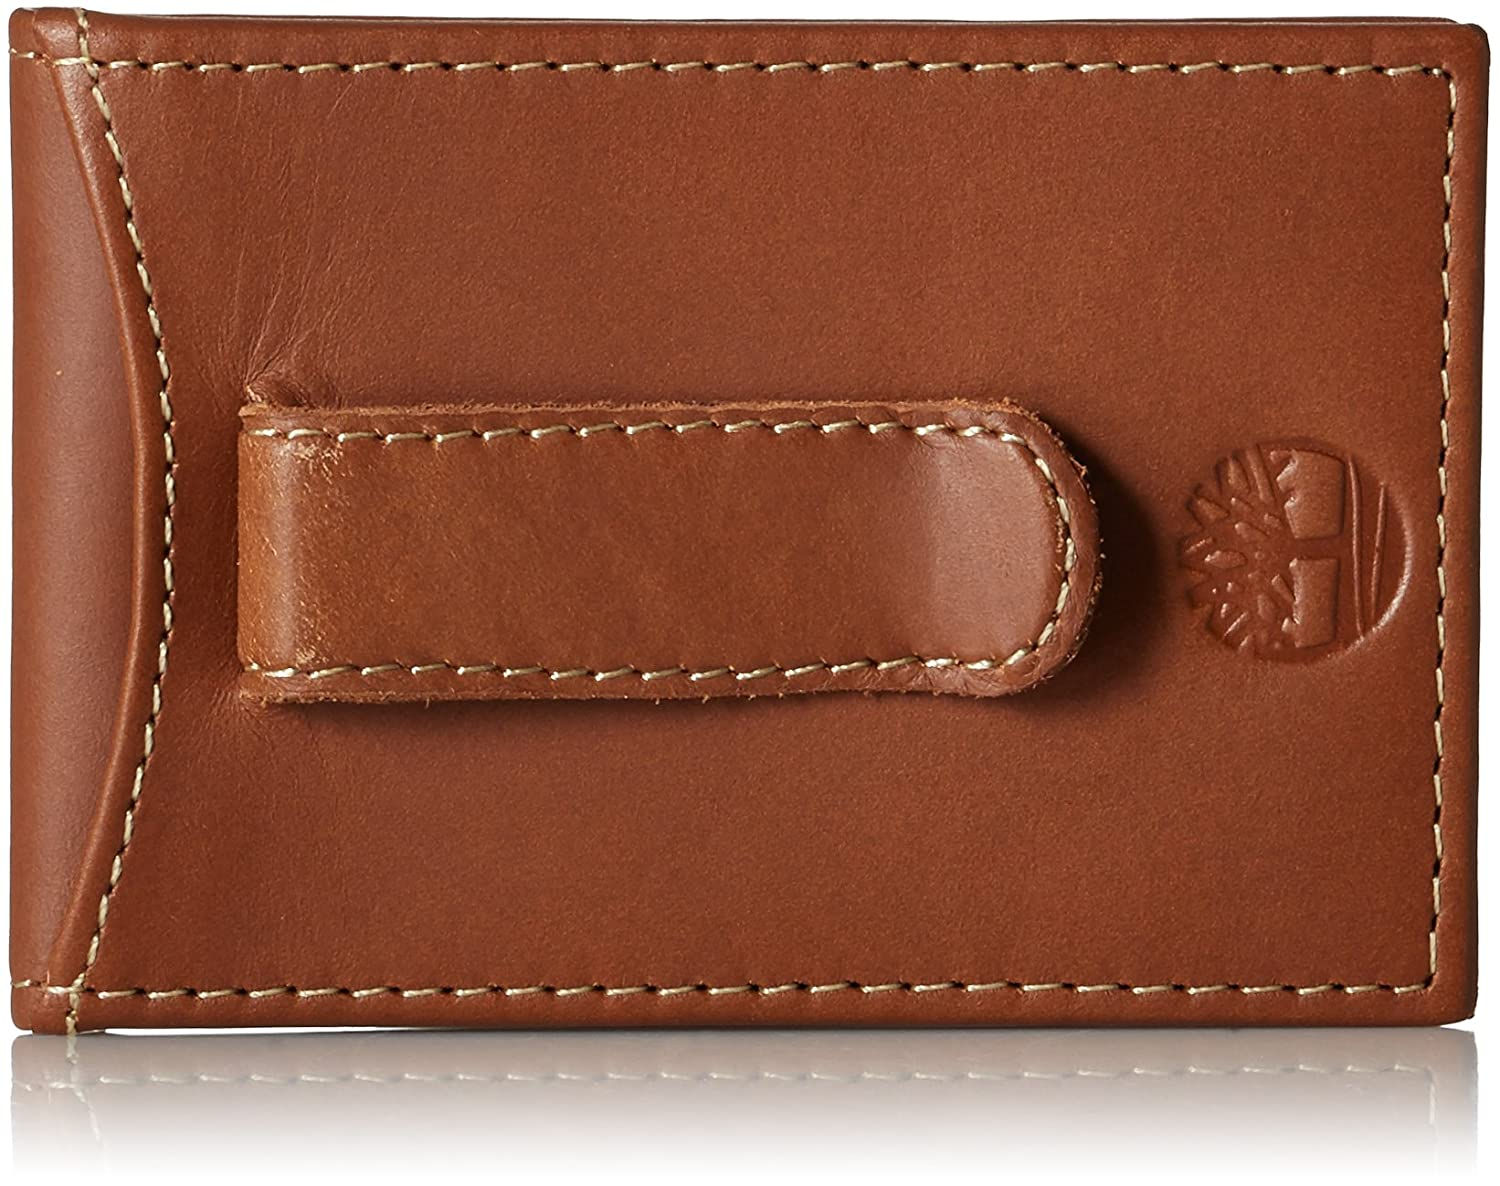 Hommes Portefeuille Timberland 29kY9cg8Xv